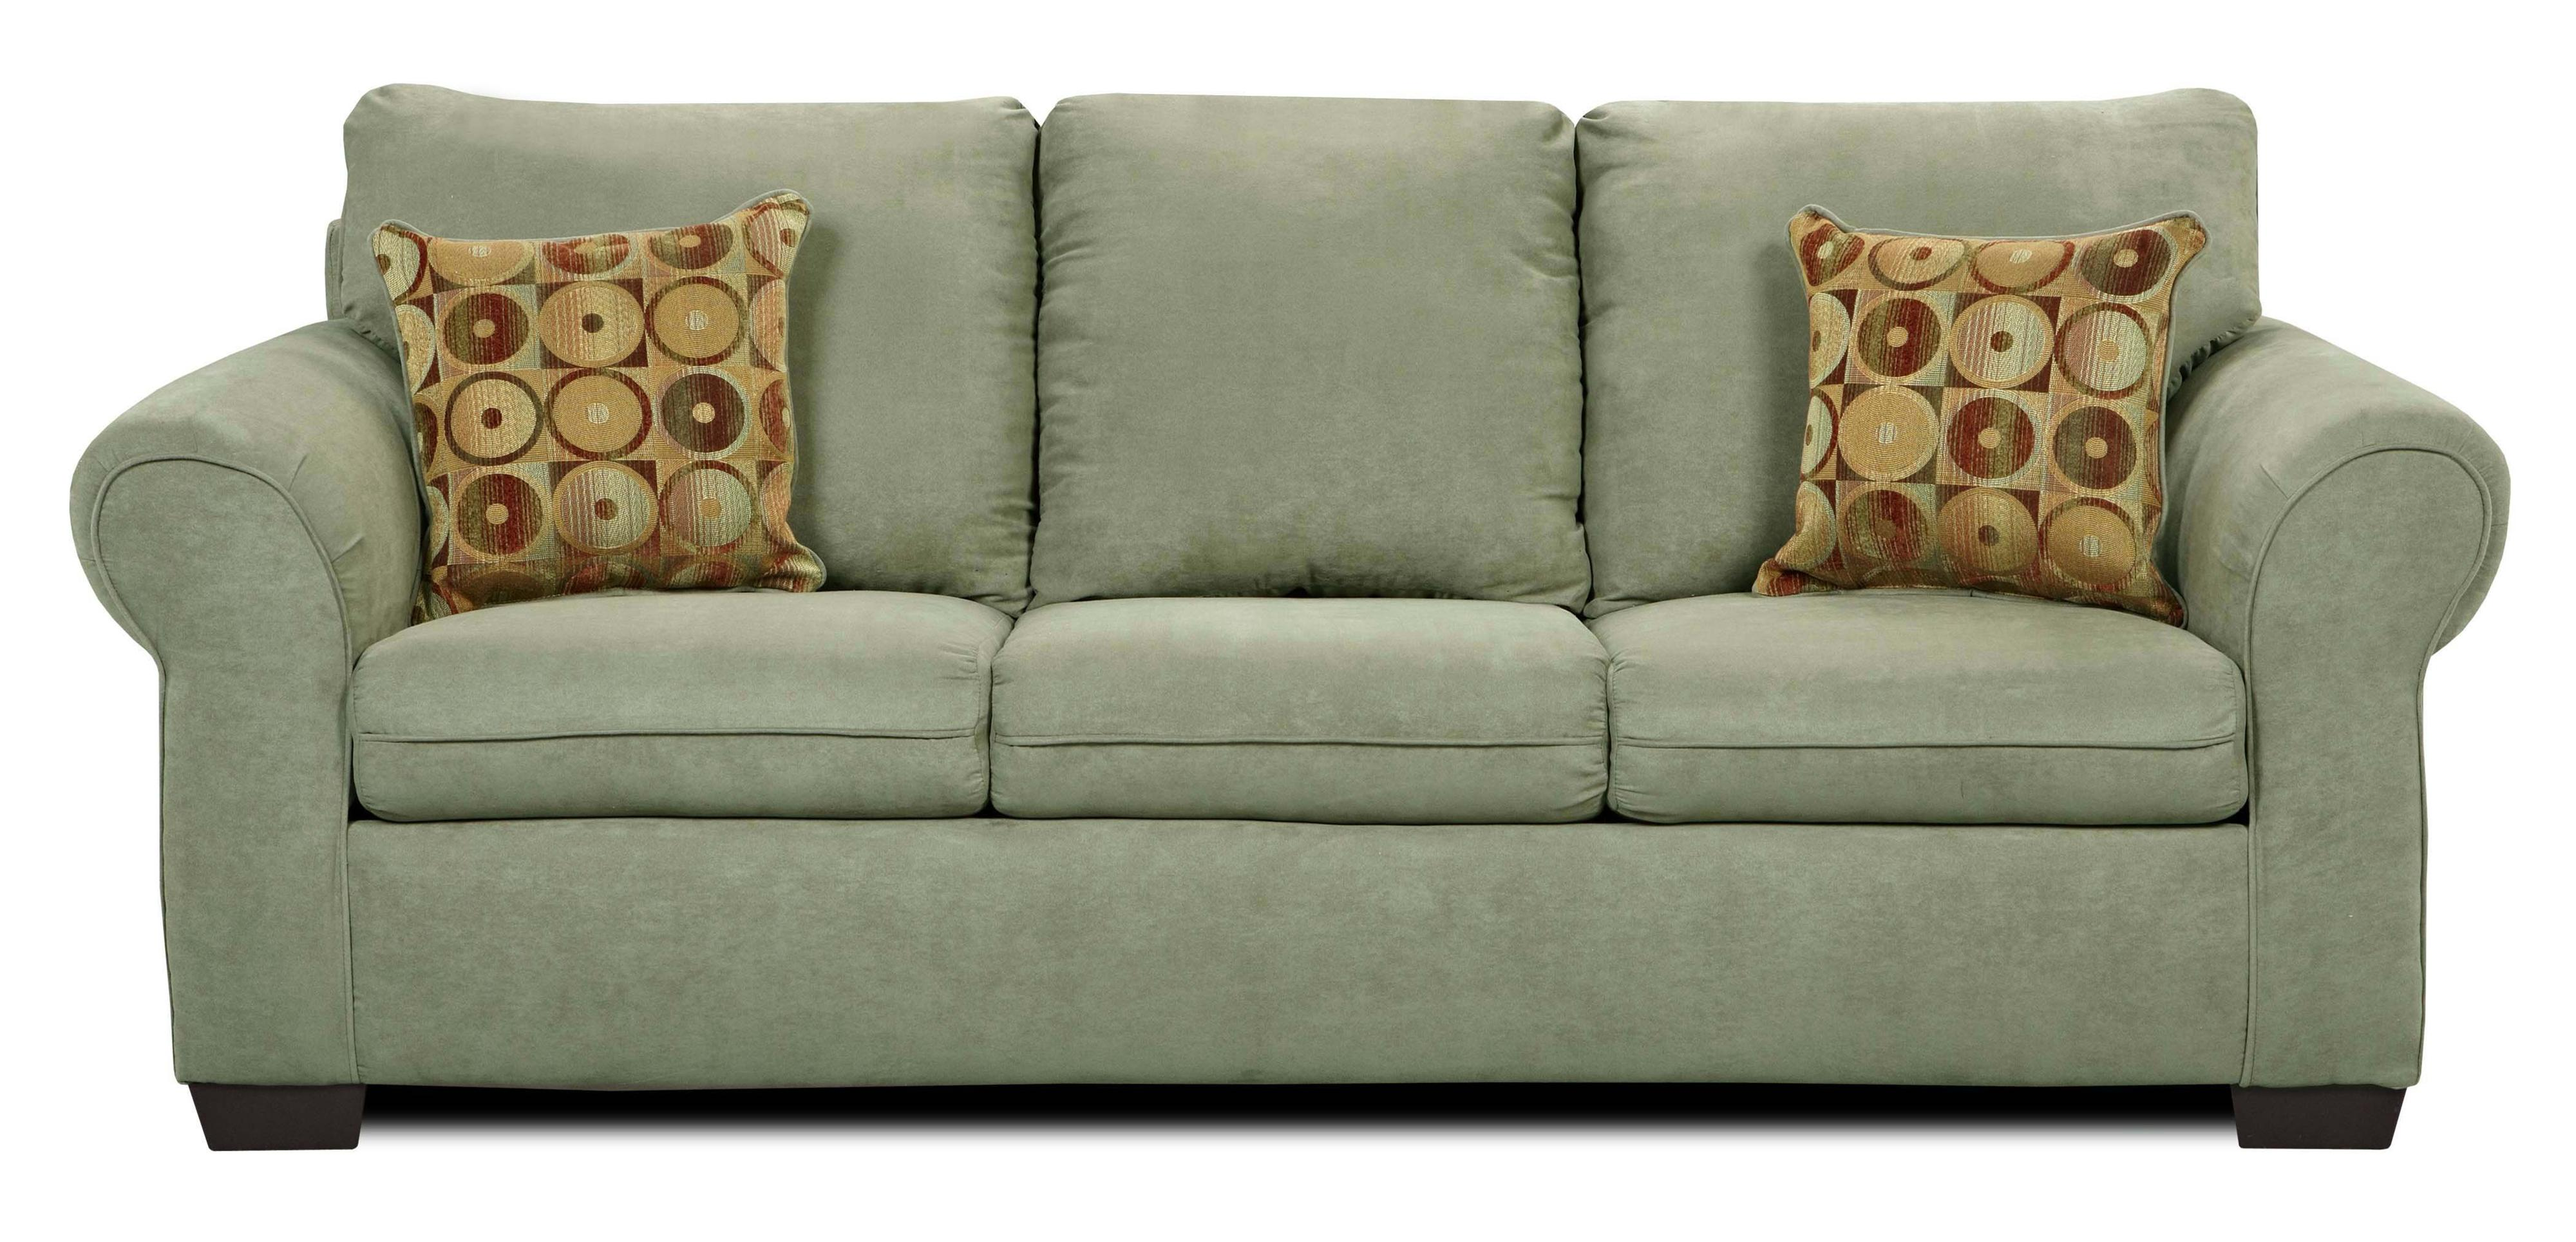 1640 Stationary Sofa by United Furniture Industries at Bullard Furniture